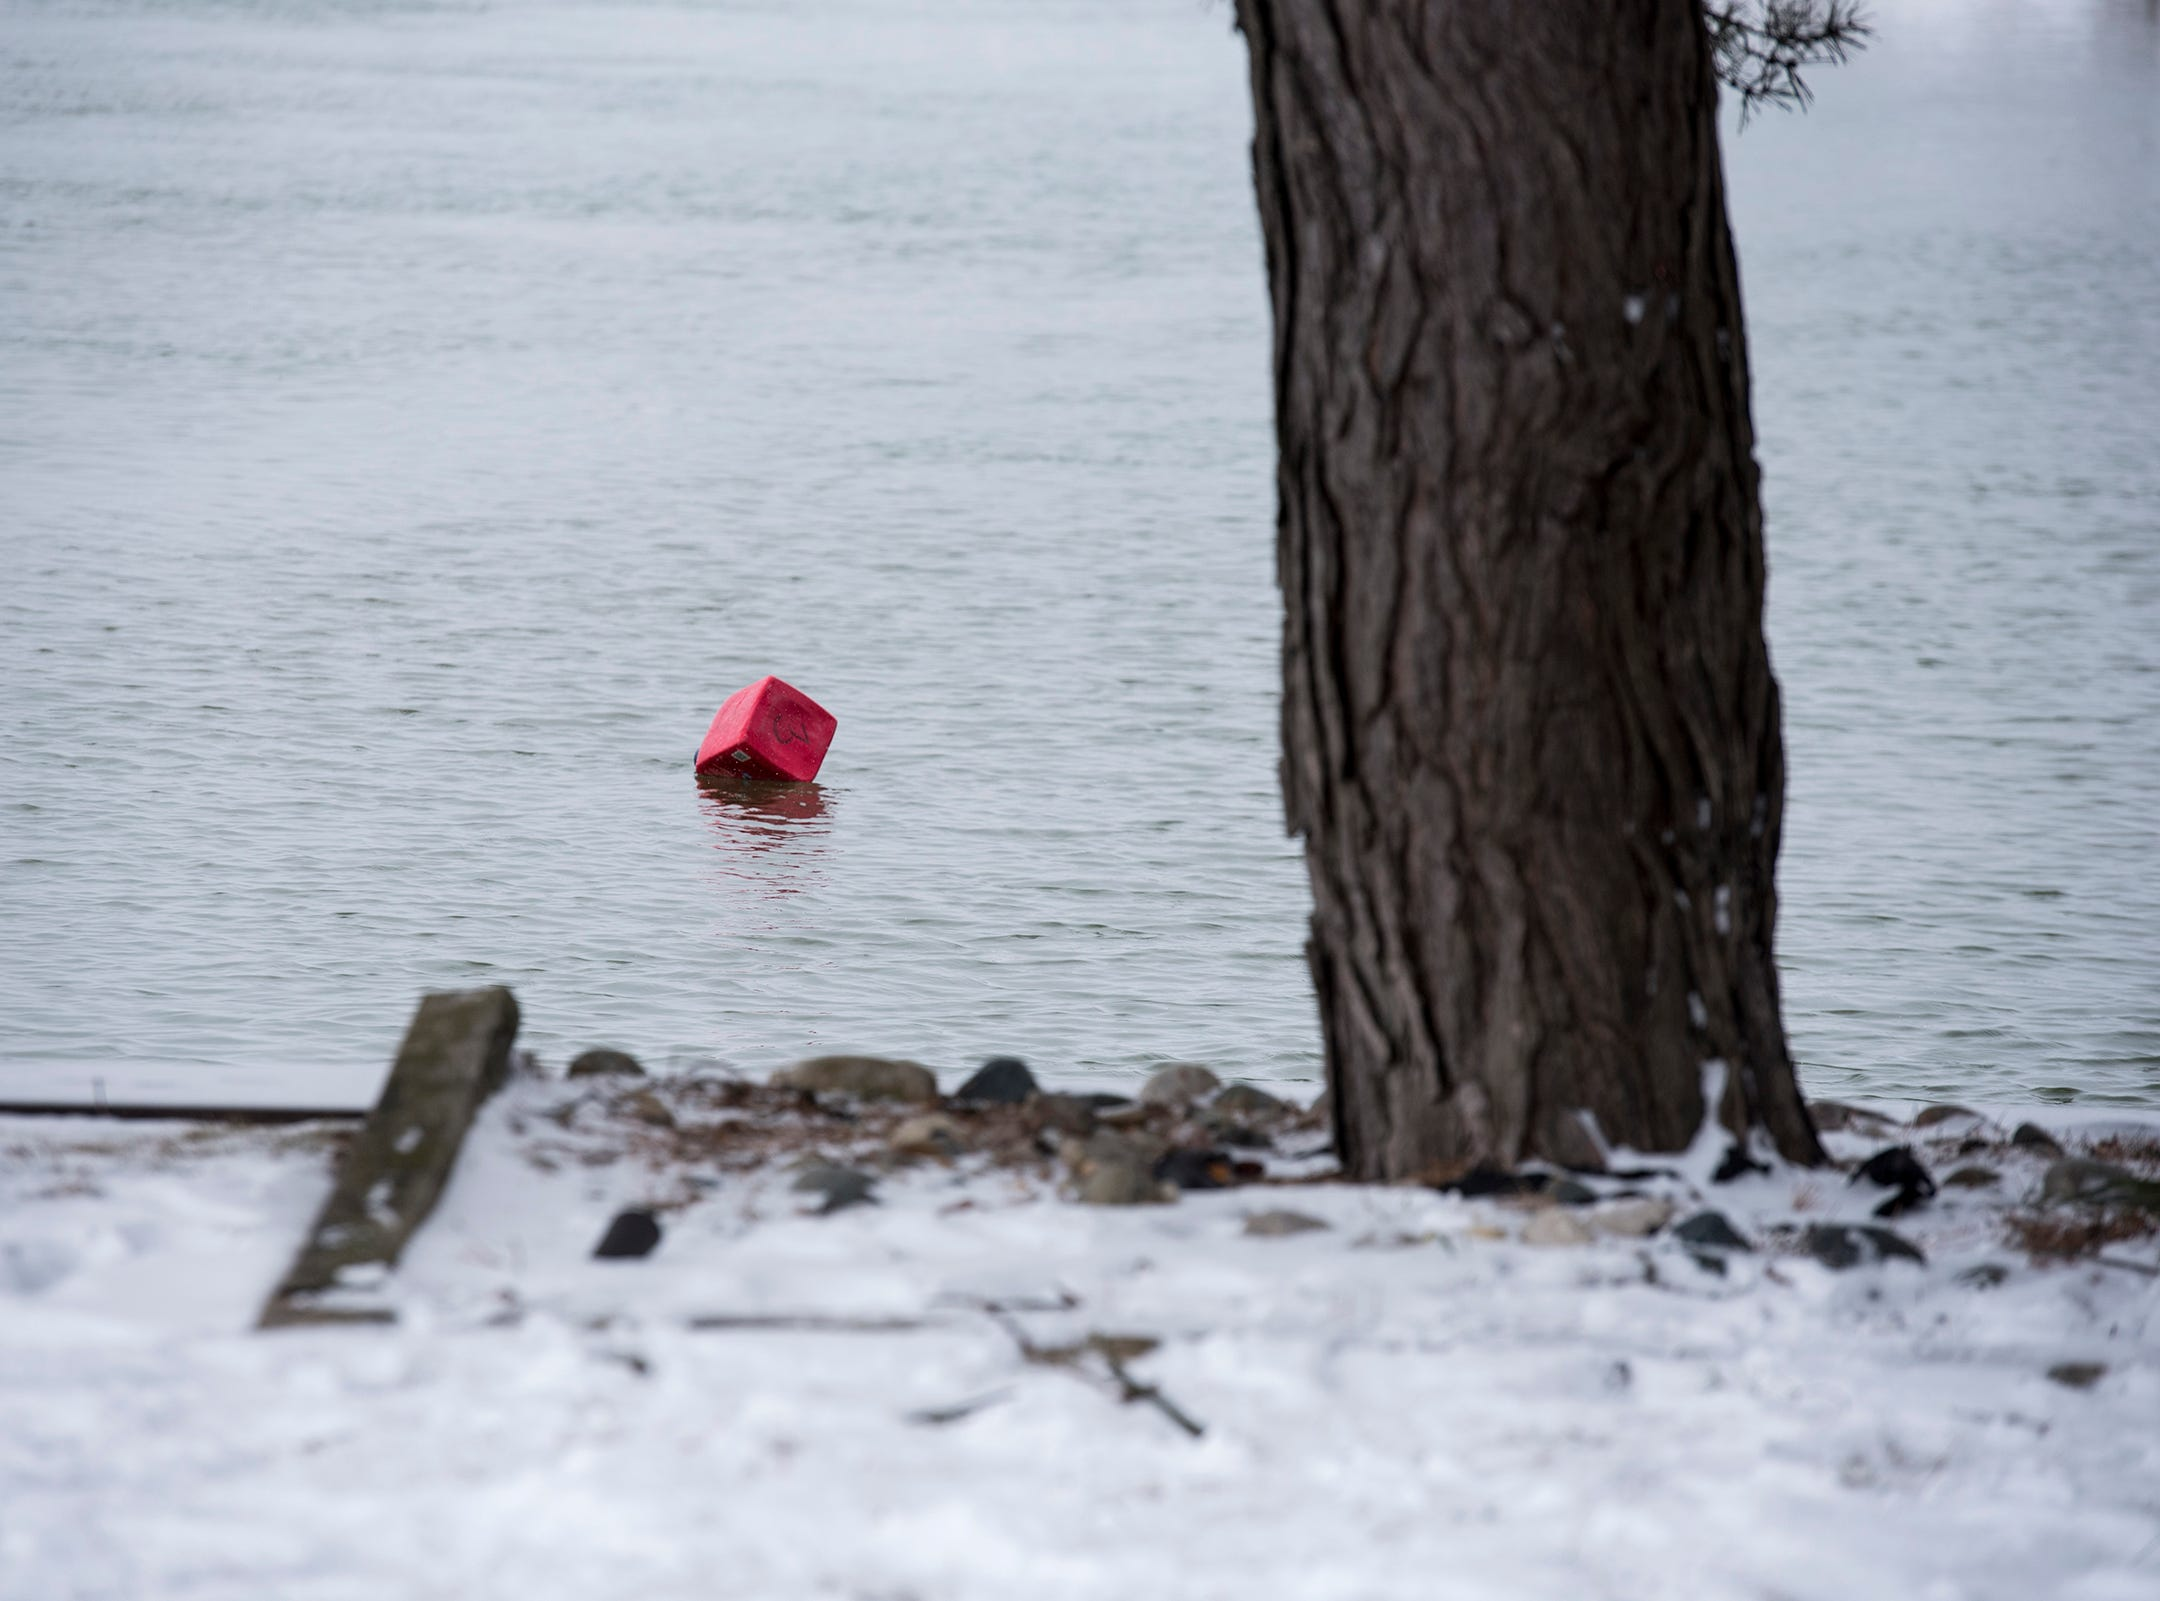 A red buoy marks the location of a vehicle that went into the water Monday, March 4, 2019, where the Belle River and St. Clair River meet in Marine City. Police spotted tracks appearing to enter the waterway in the 1300 block of South Water Street shortly before 9:30 a.m. A body was discovered in the water.